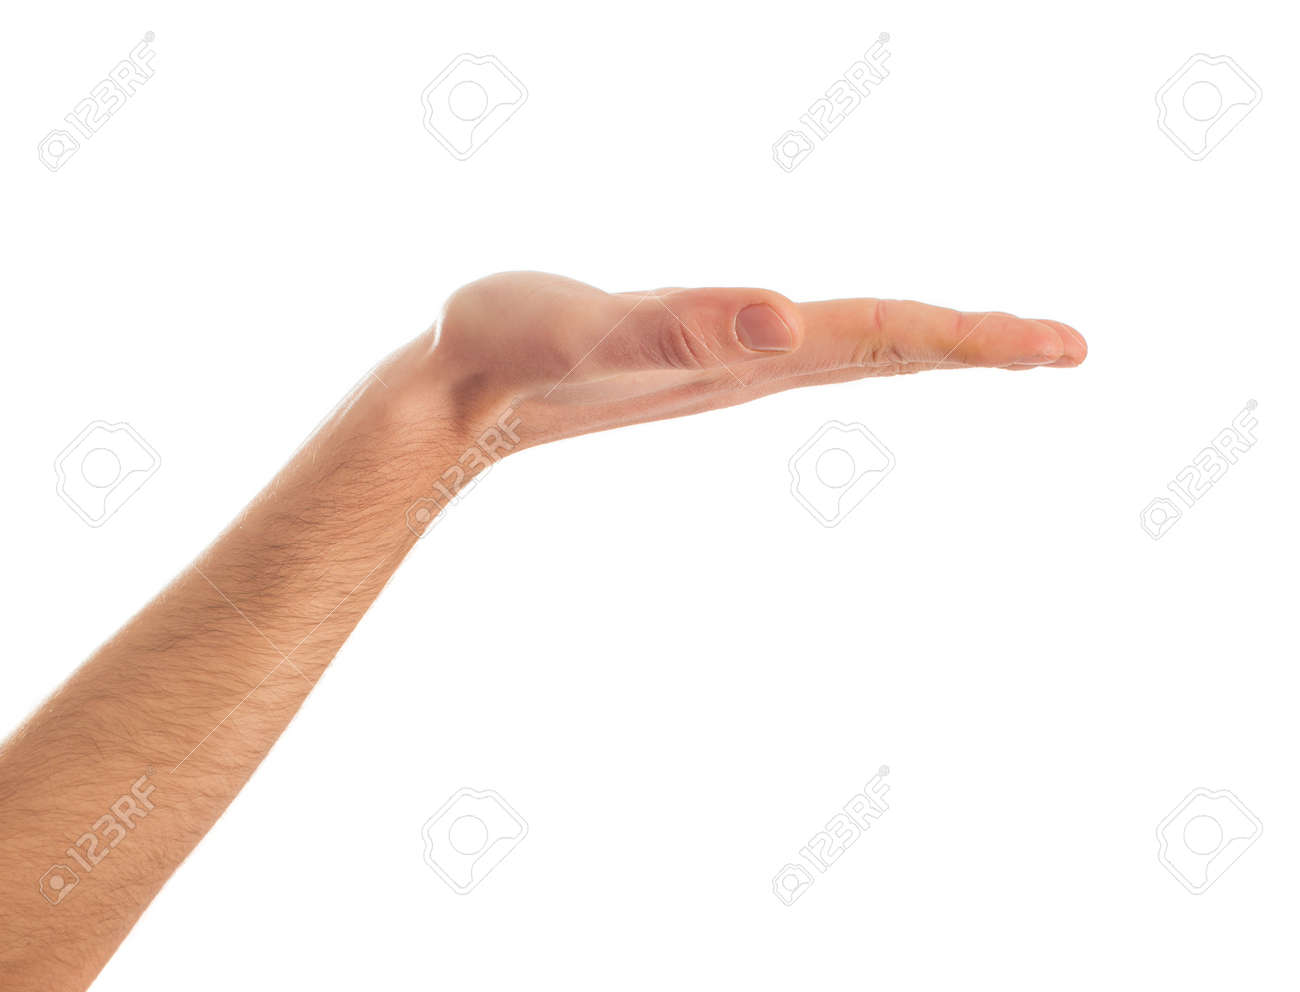 Close-up Of Human Hand Presenting On White Background - 22036448